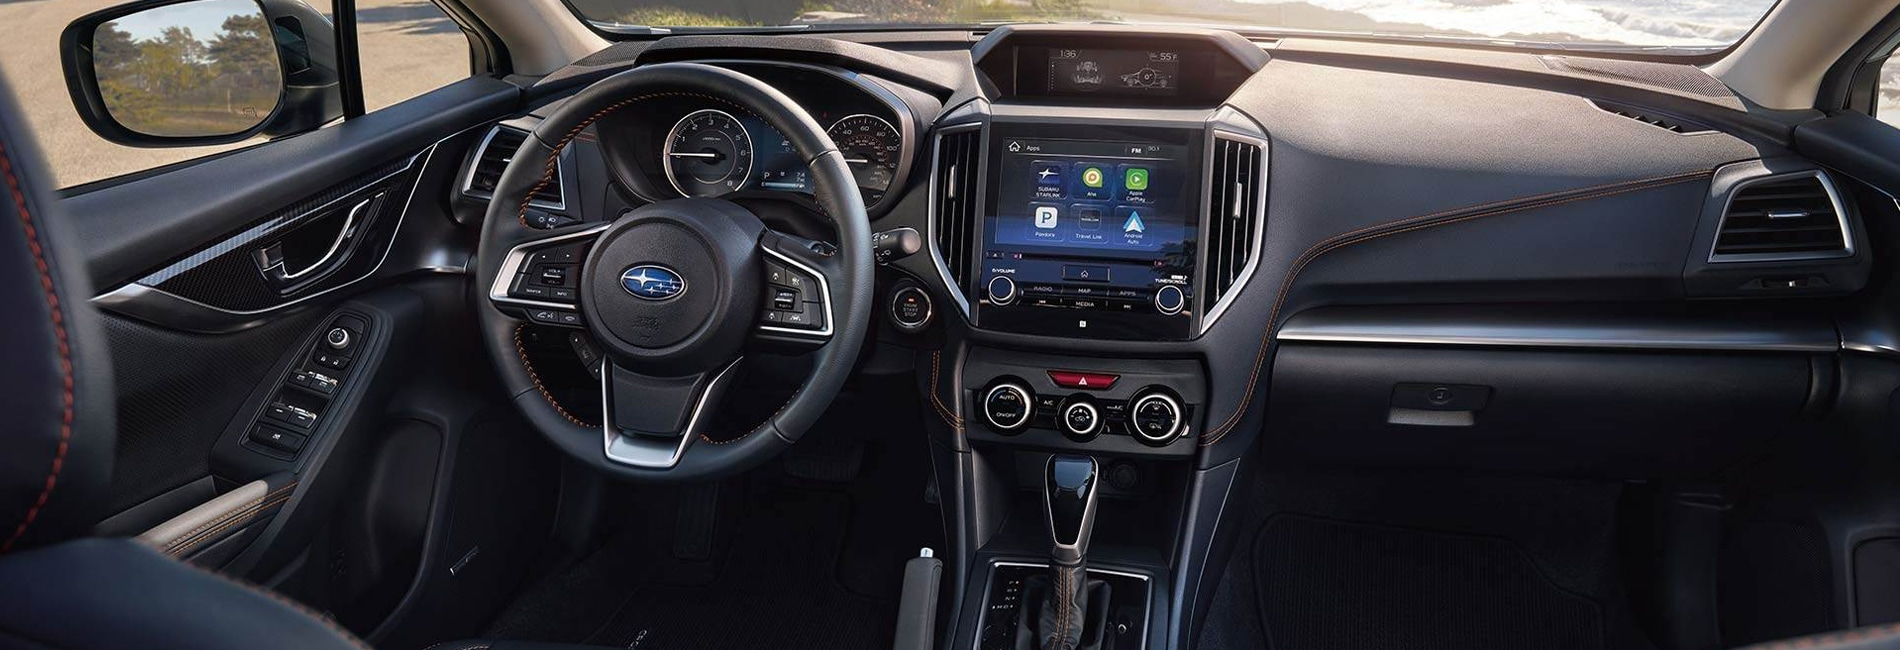 2018 Subaru Crosstrek Civic Interior Features